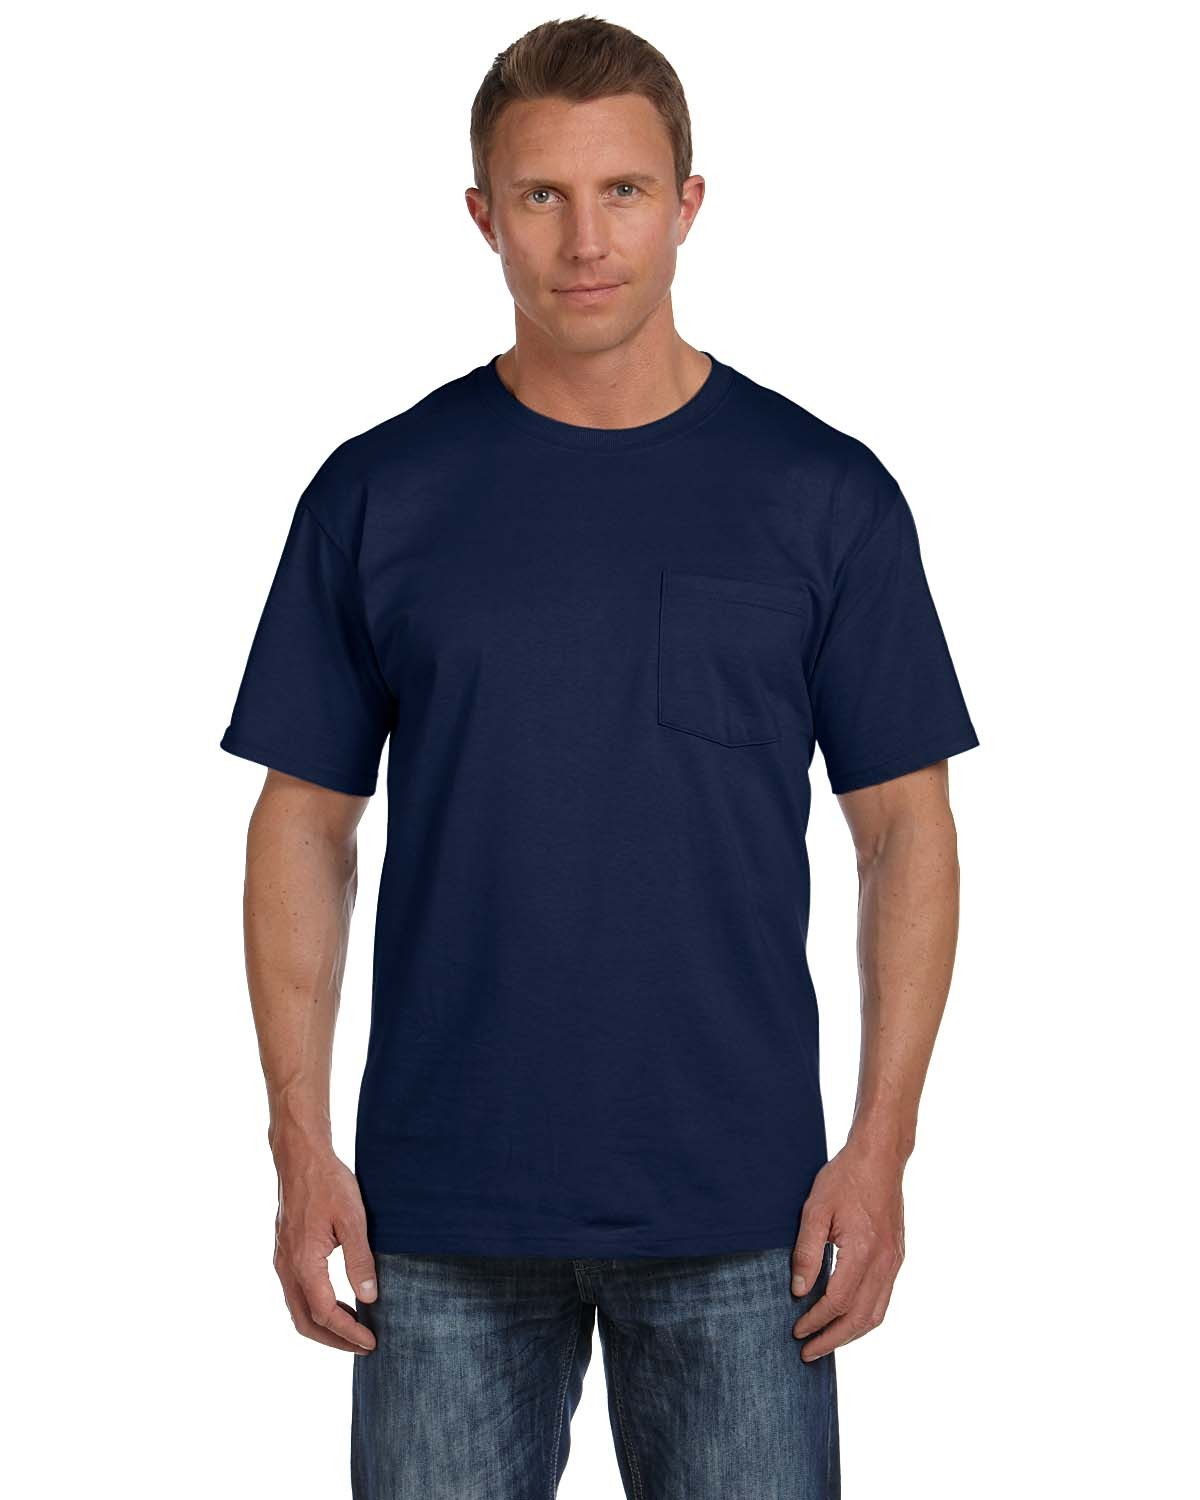 3931P Fruit of the Loom J NAVY